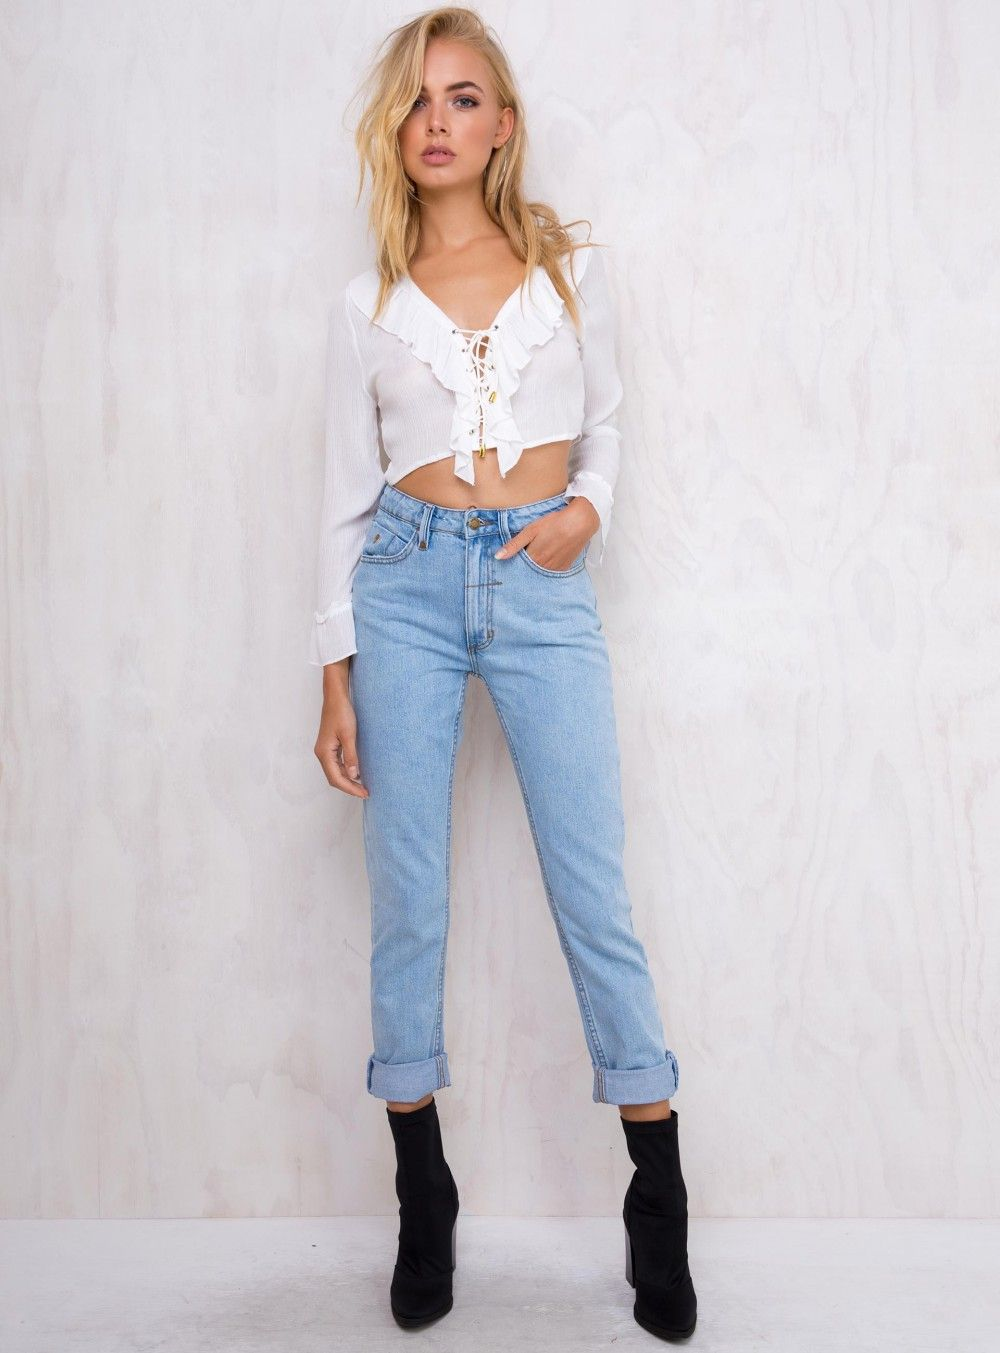 e3585af6ae Thrills Reckless Blue Thelma Jeans